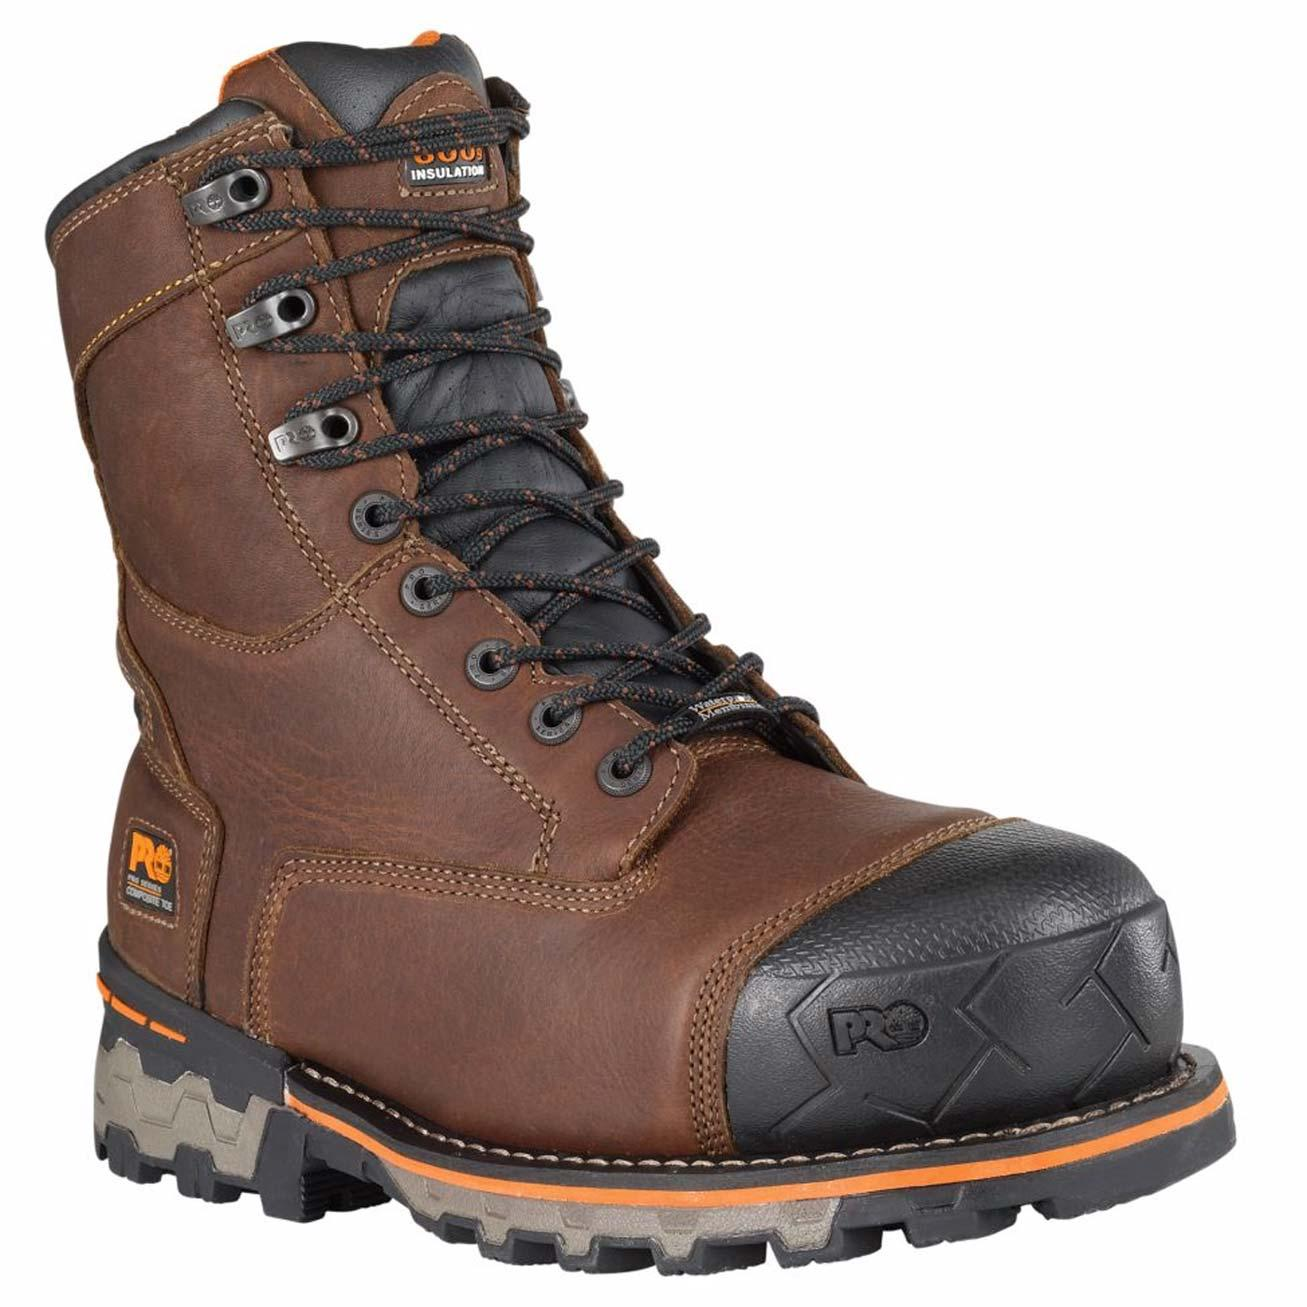 64bada2672a Timberland PRO Boondock Composite Toe Waterproof Insulated Work Boot